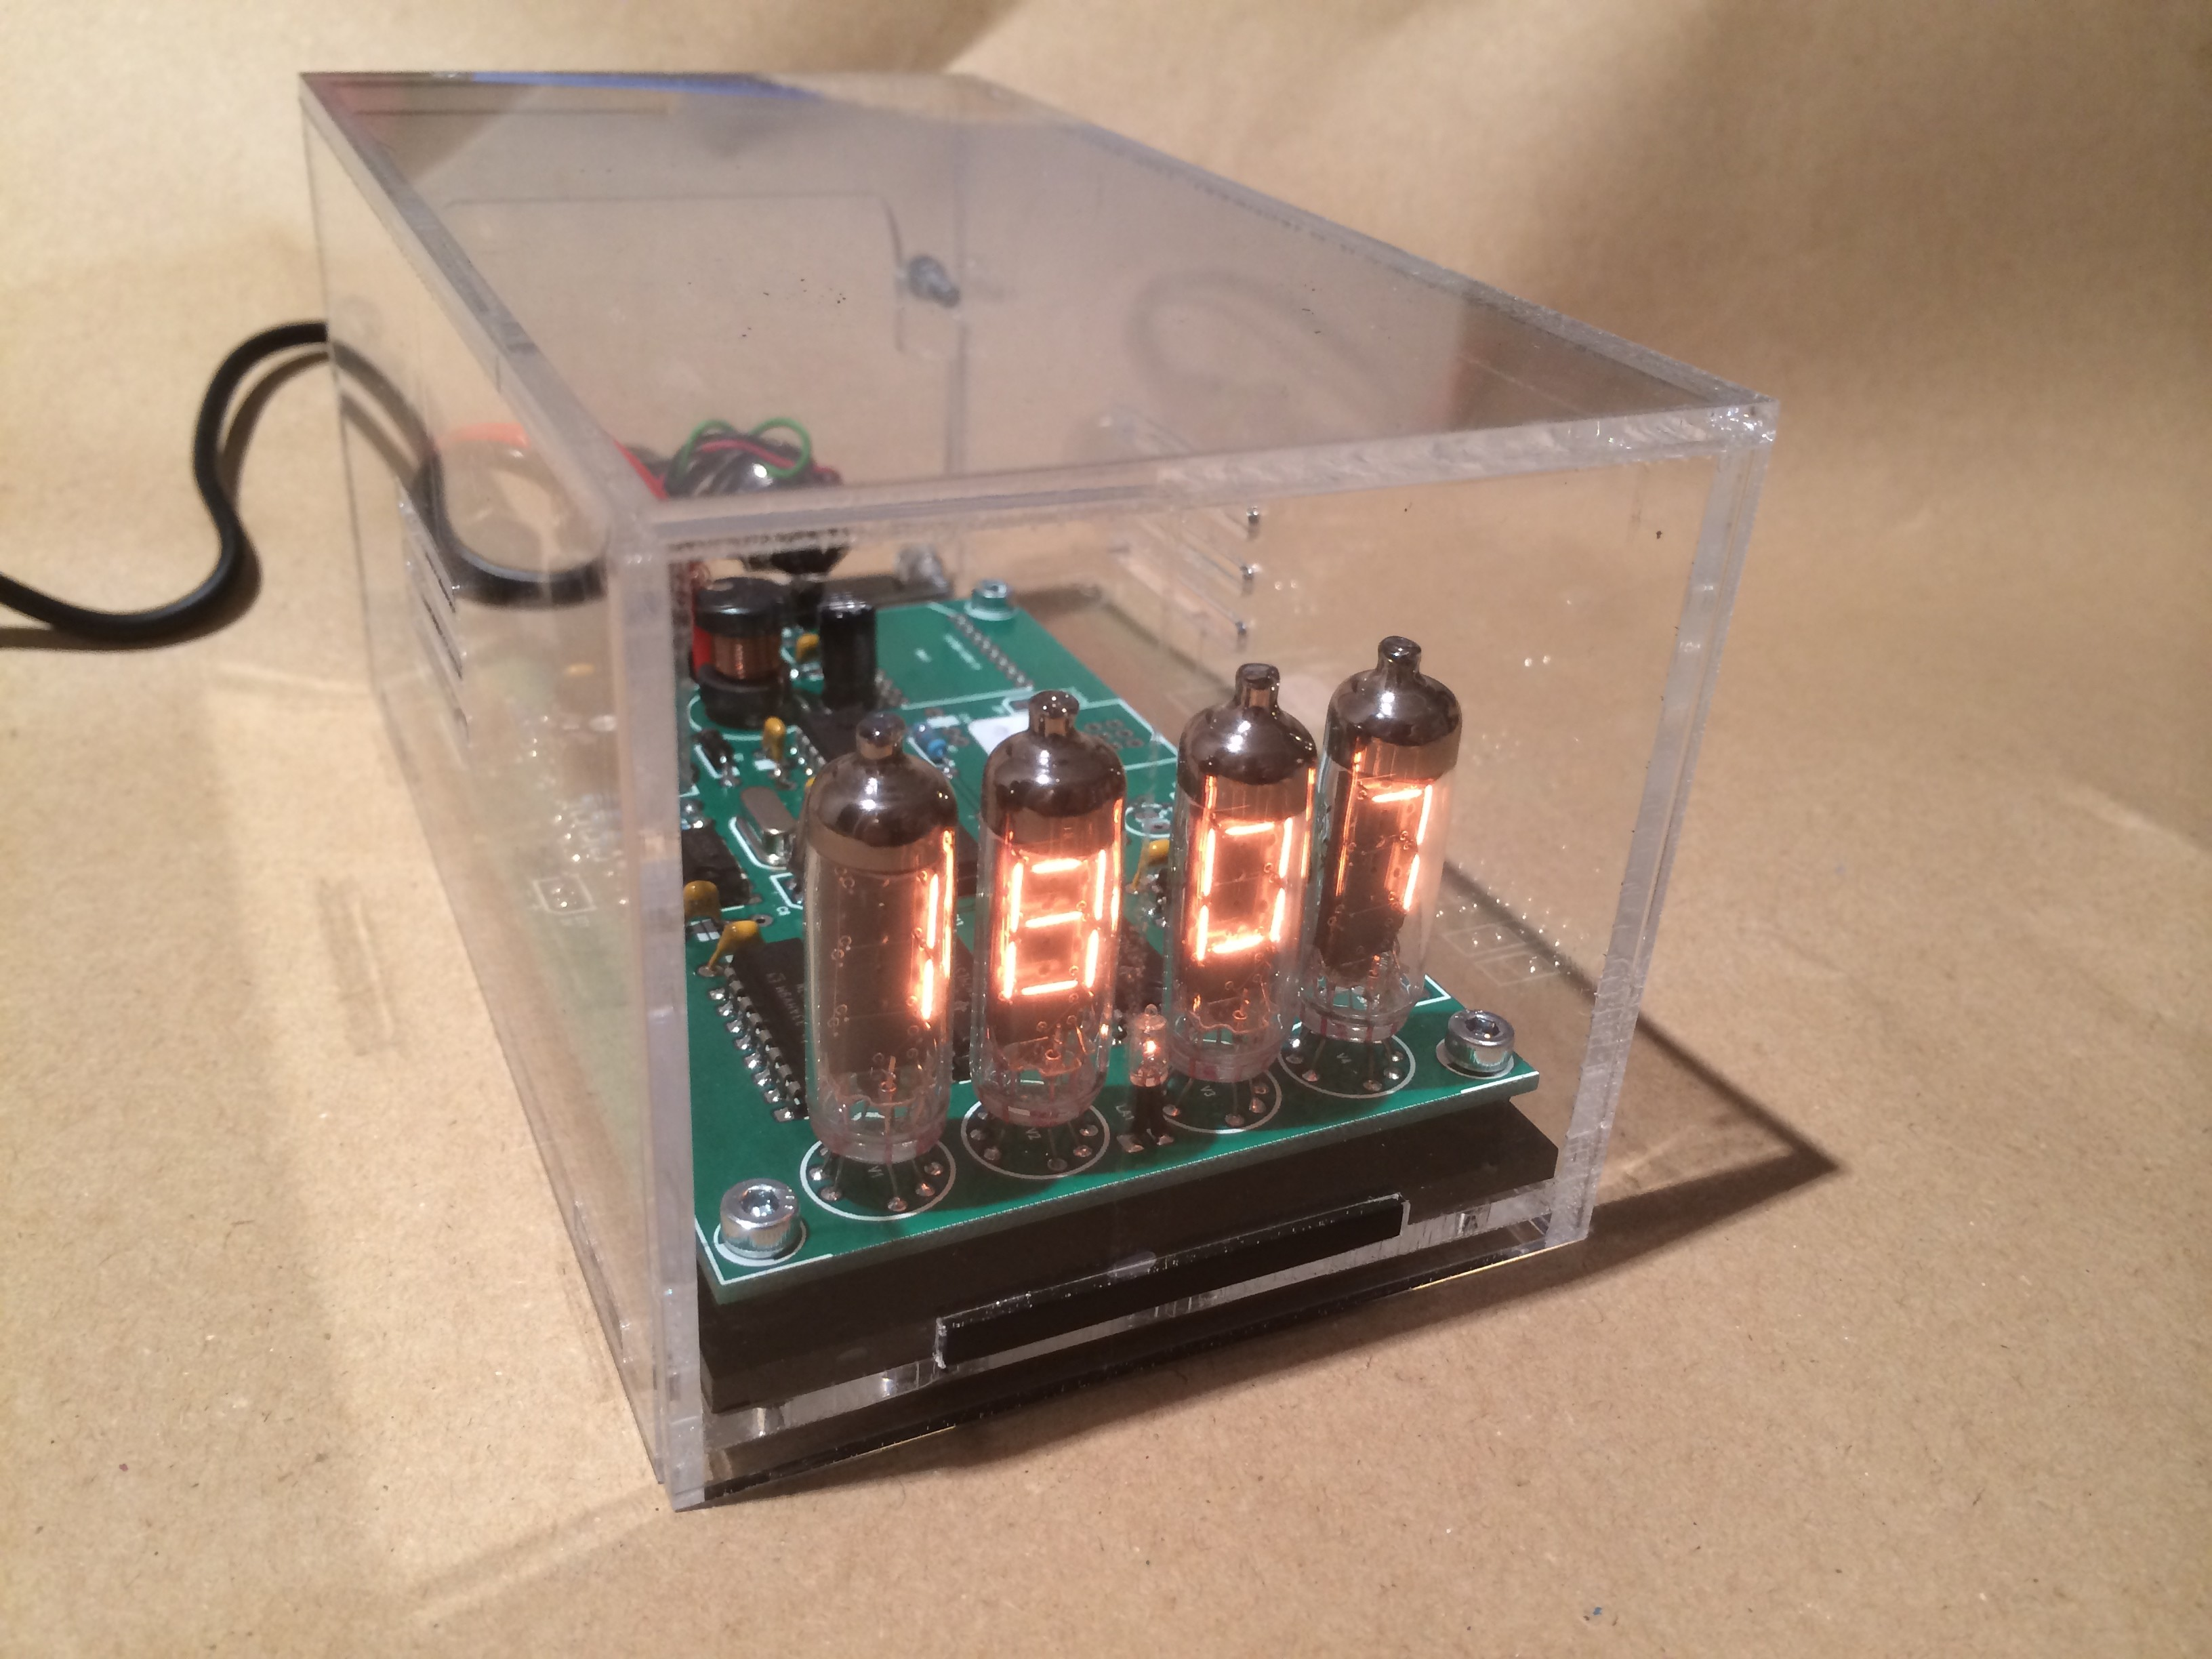 Numitron Arduino Clock And Thermometer 120740 I Elektor Labs Degree Electronics Forum Circuits Projects Microcontrollers Magazine